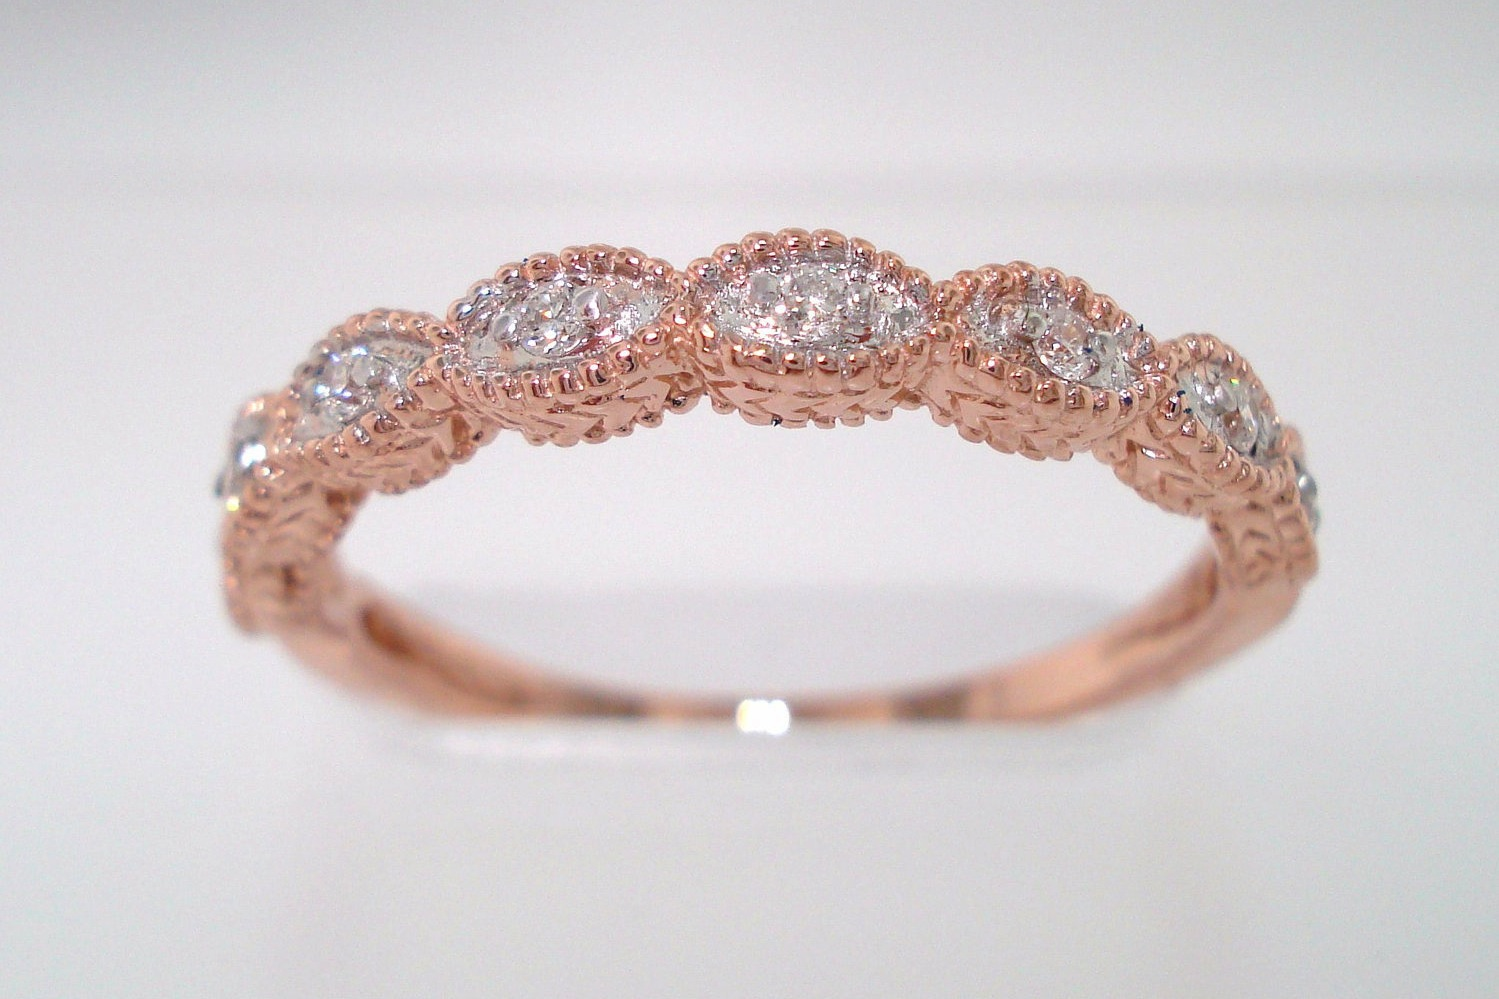 rose-gold-brides-wedding-band-with-diamonds.original.jpg?1379261997